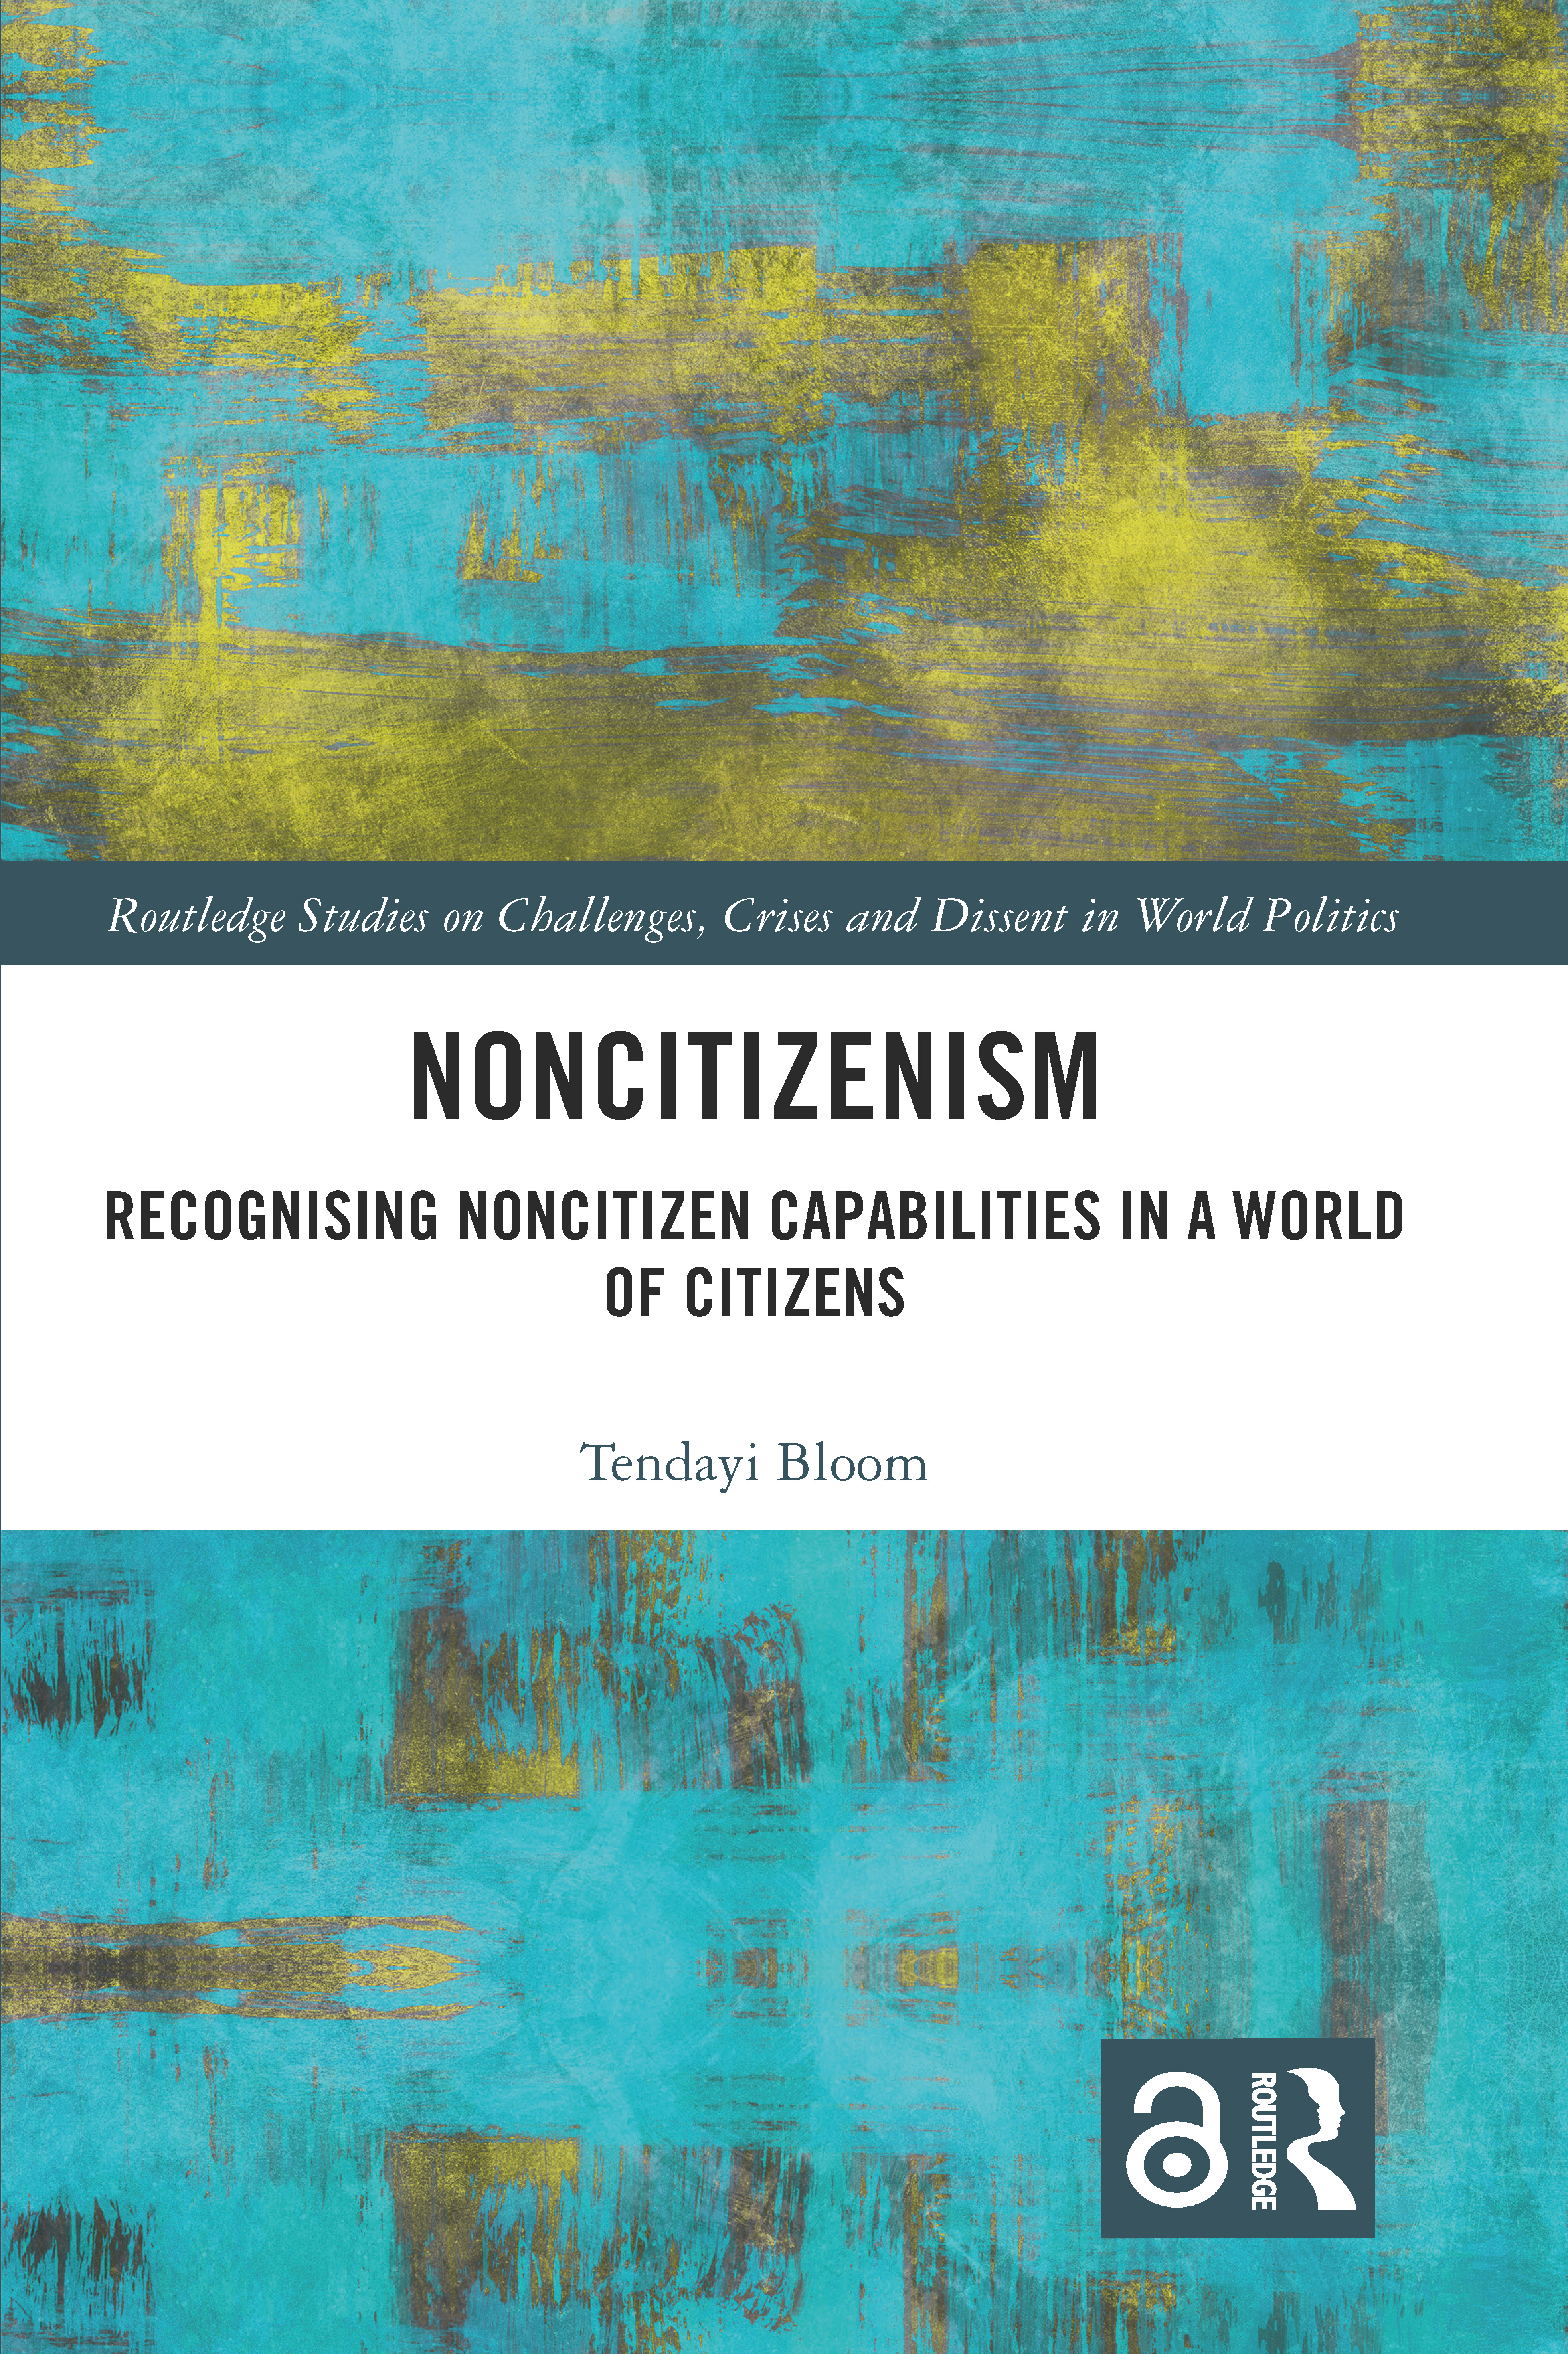 Noncitizenism: Recognising Noncitizen Capabilities in a World of Citizens book cover